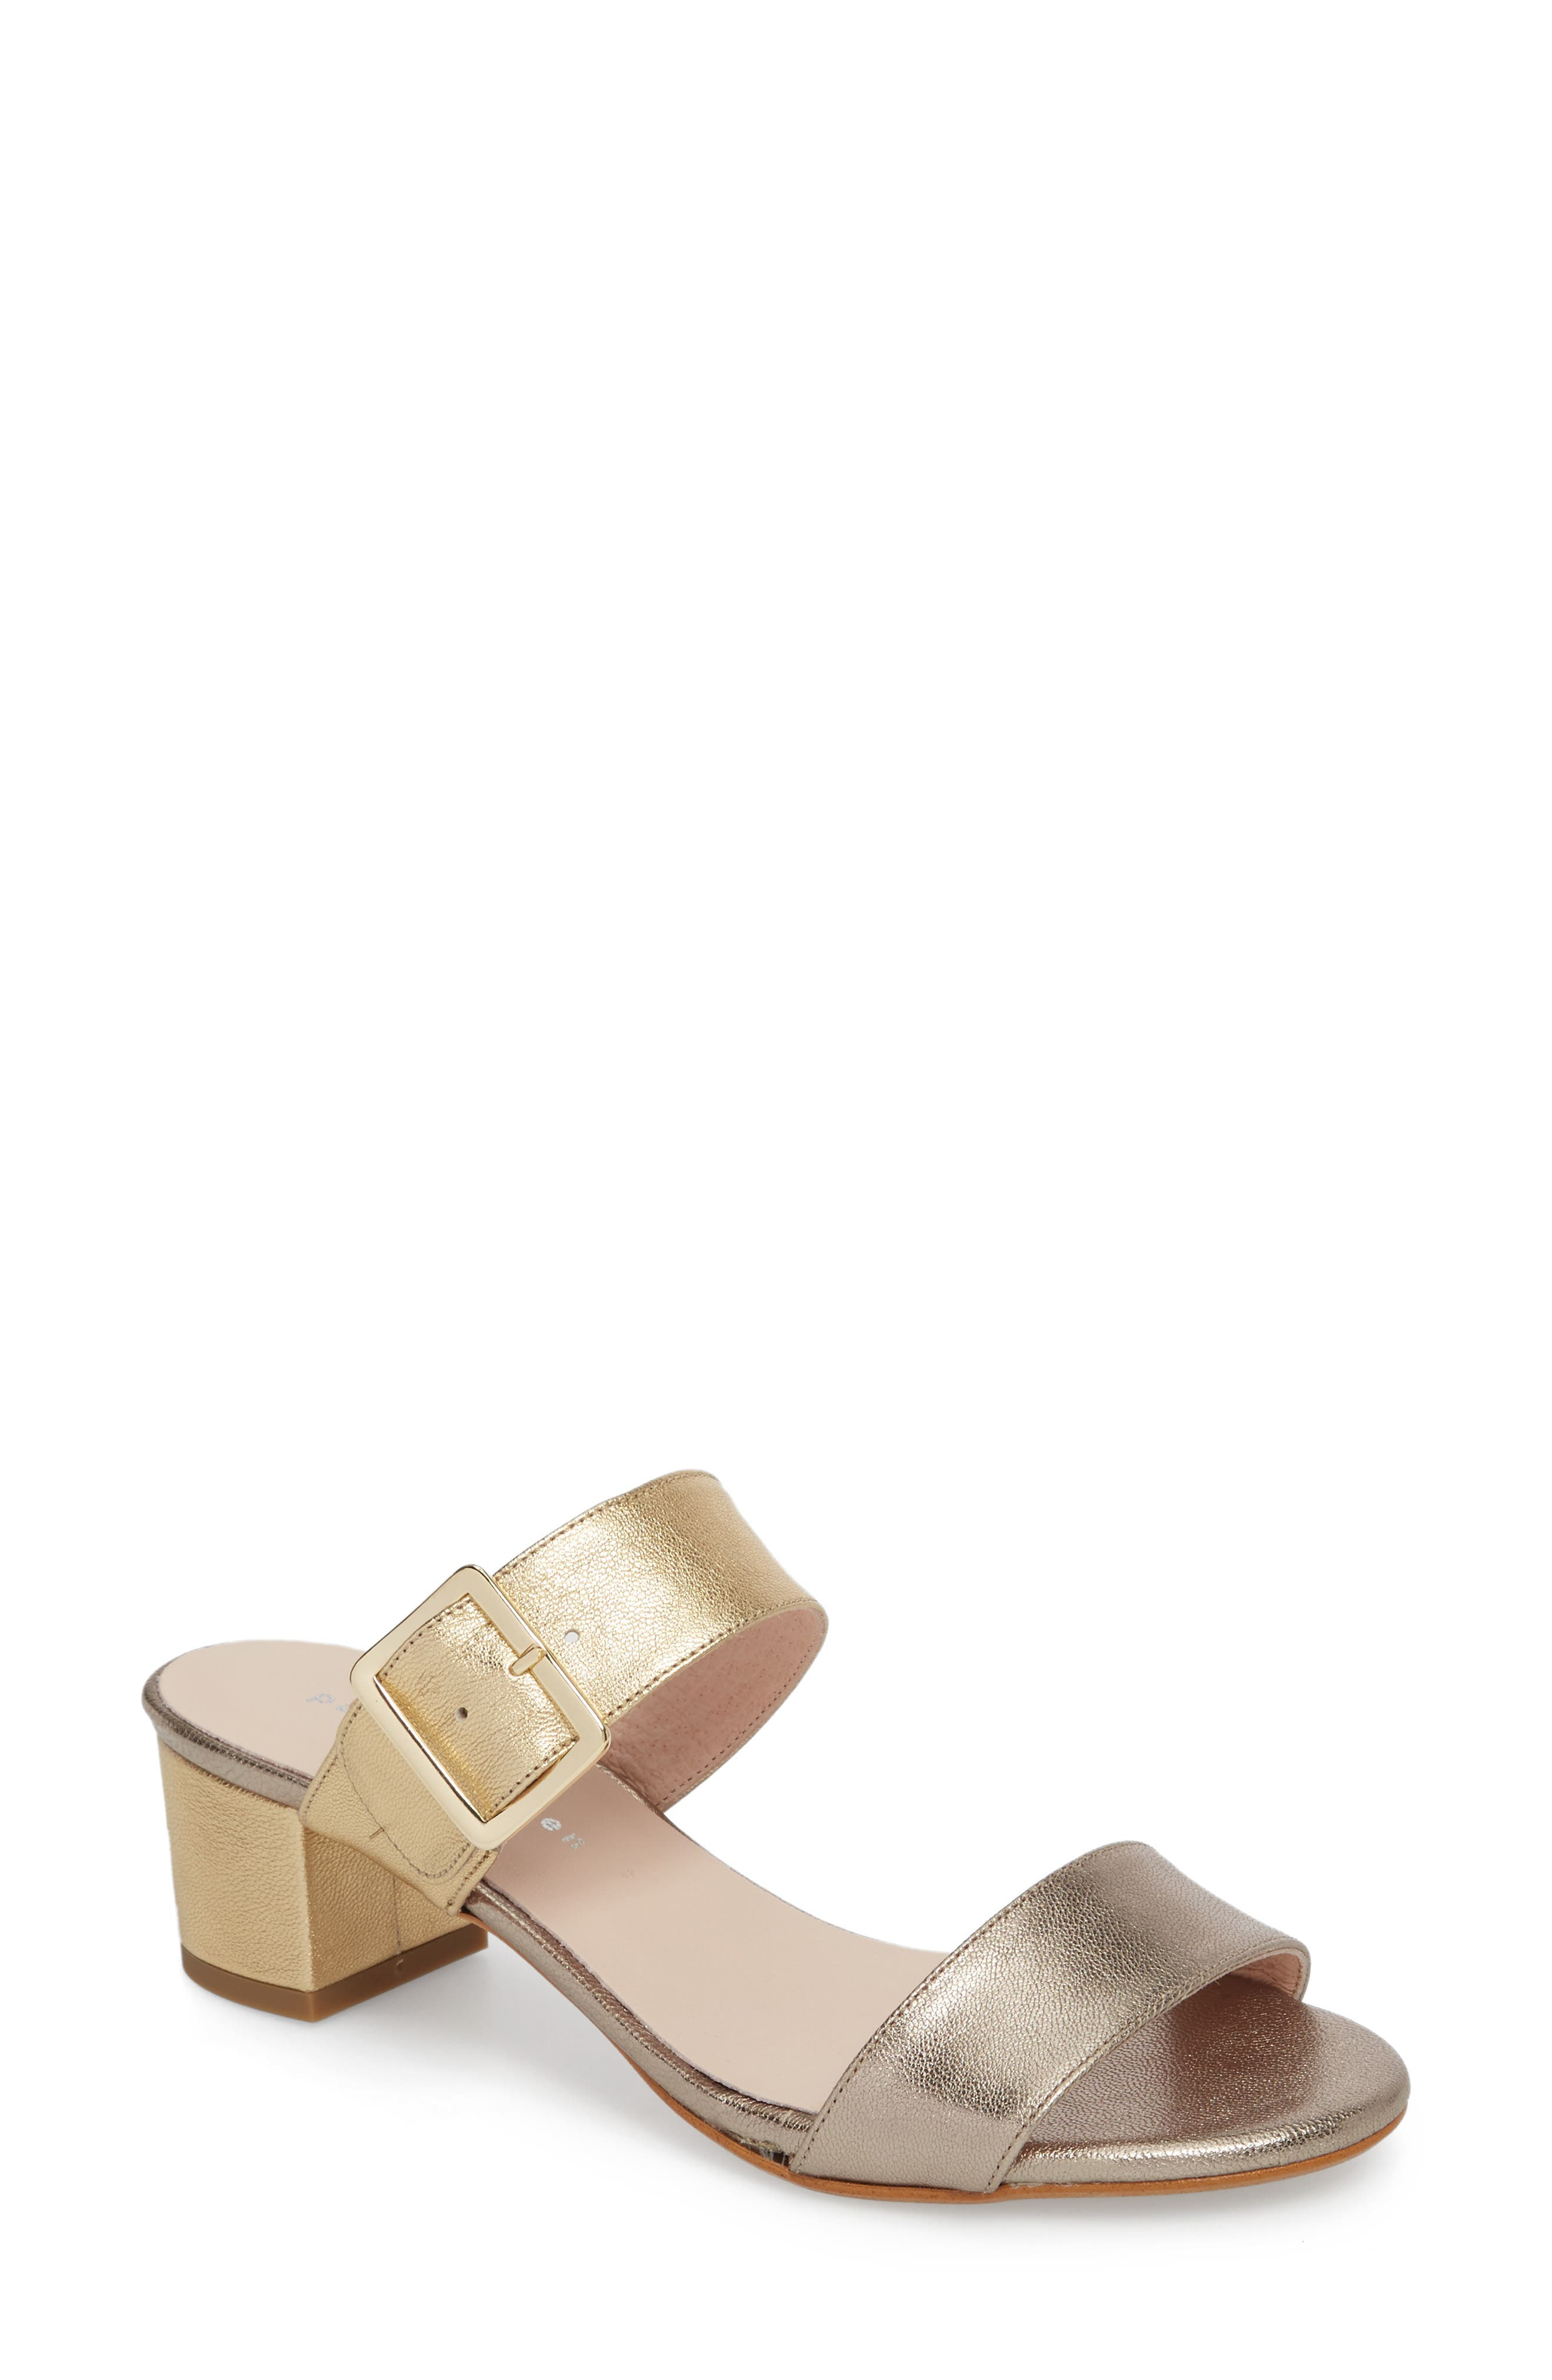 Patricia Green Ruth Slide Sandal, Metallic